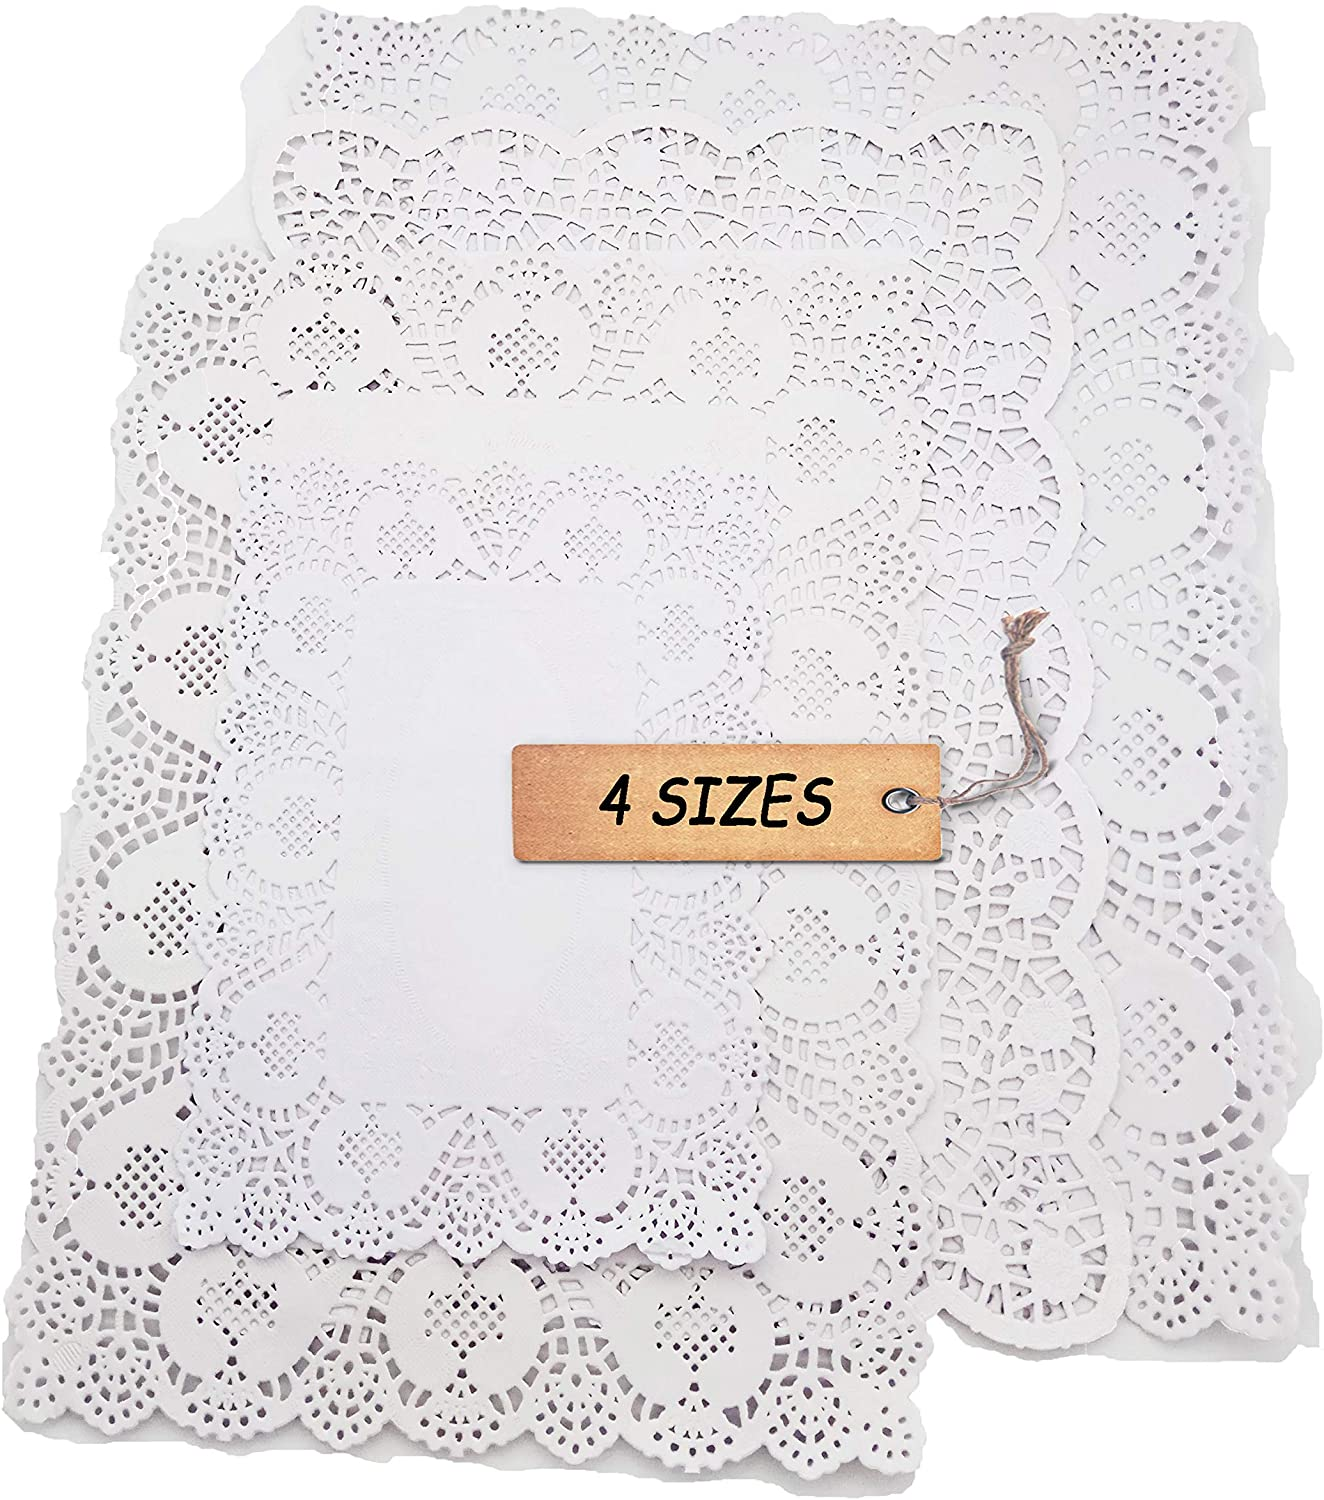 SCHOLMART Rectangle Paper Doilies, Rectangle Paper Lace Doilies, Tea Party Placemats, Disposable Wedding Birthday Party Tableware, Cake Packing Pad (4-size 32 pack)